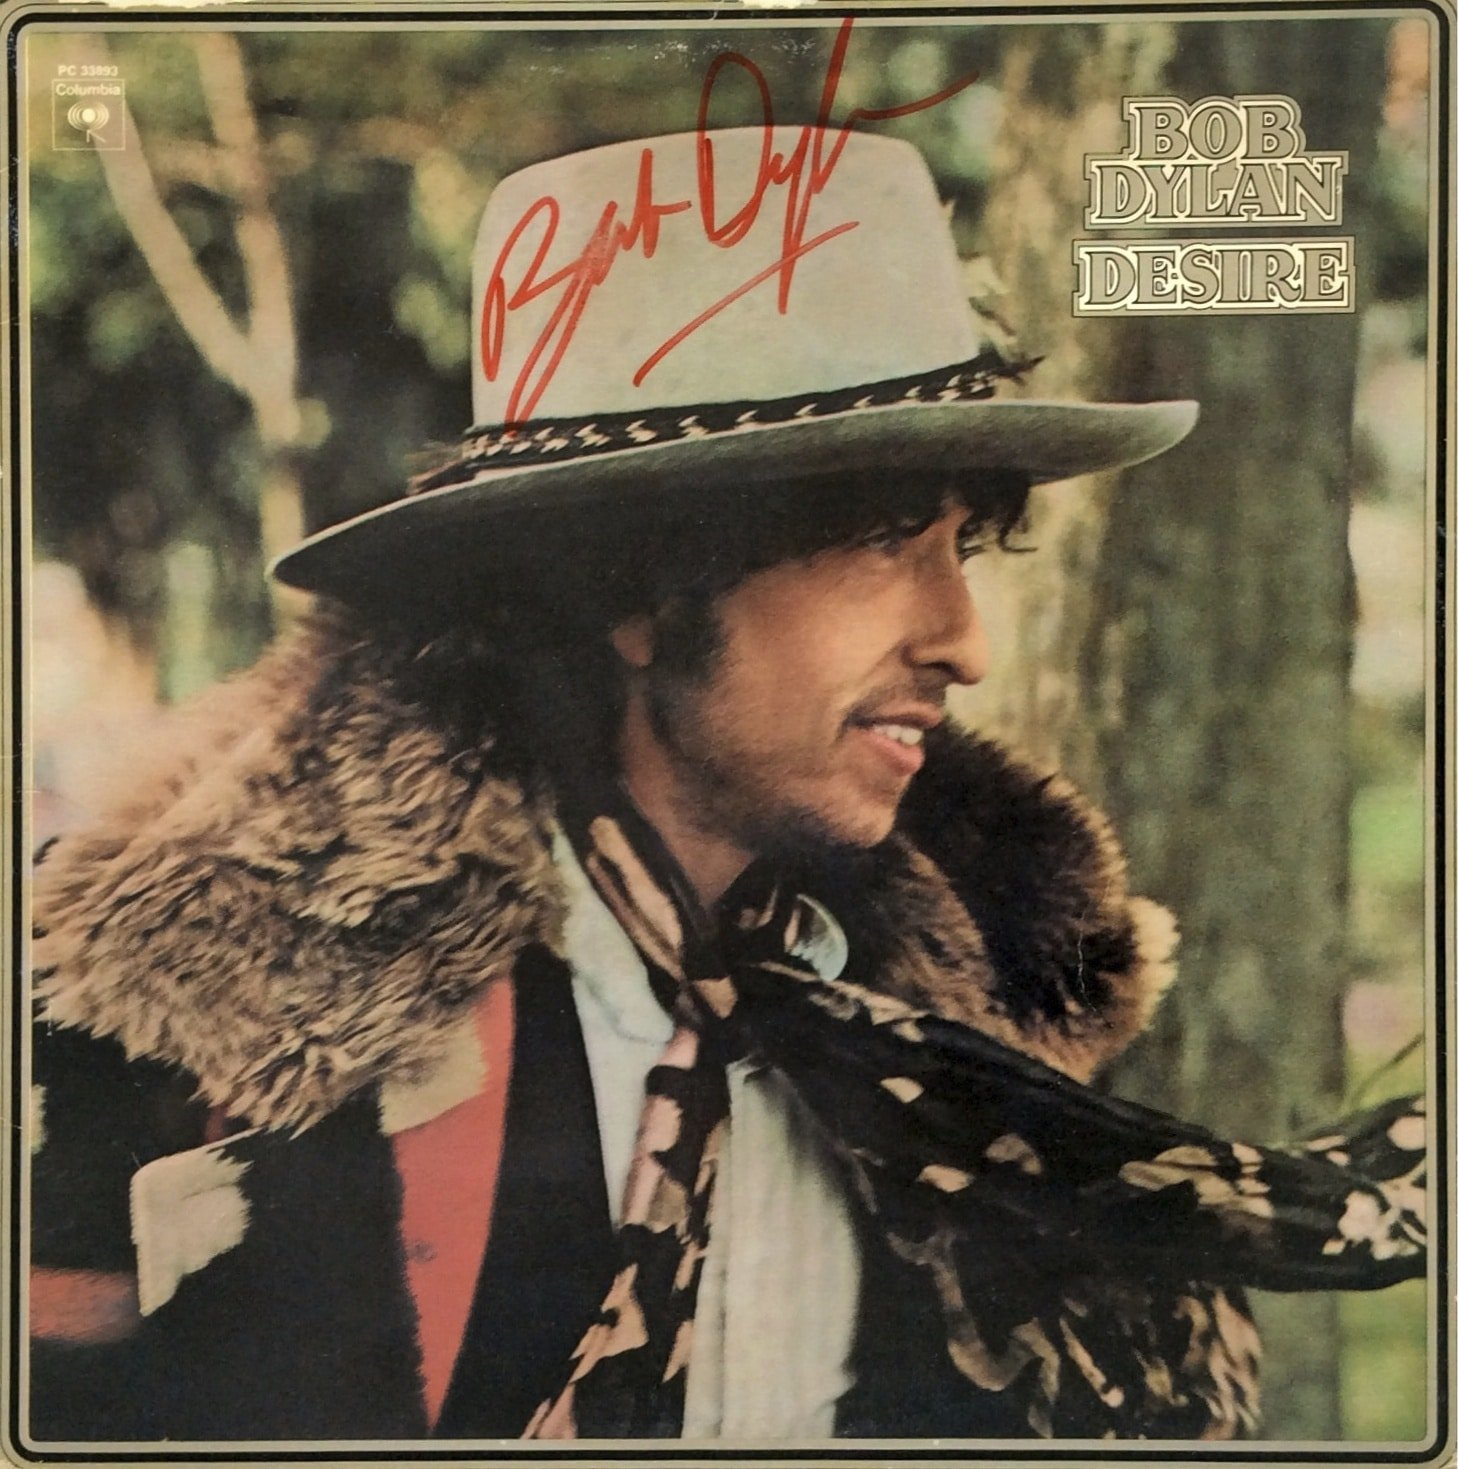 Bob Dylan  Autographed Desire Album Cover Flat with Lifetime Guarantee